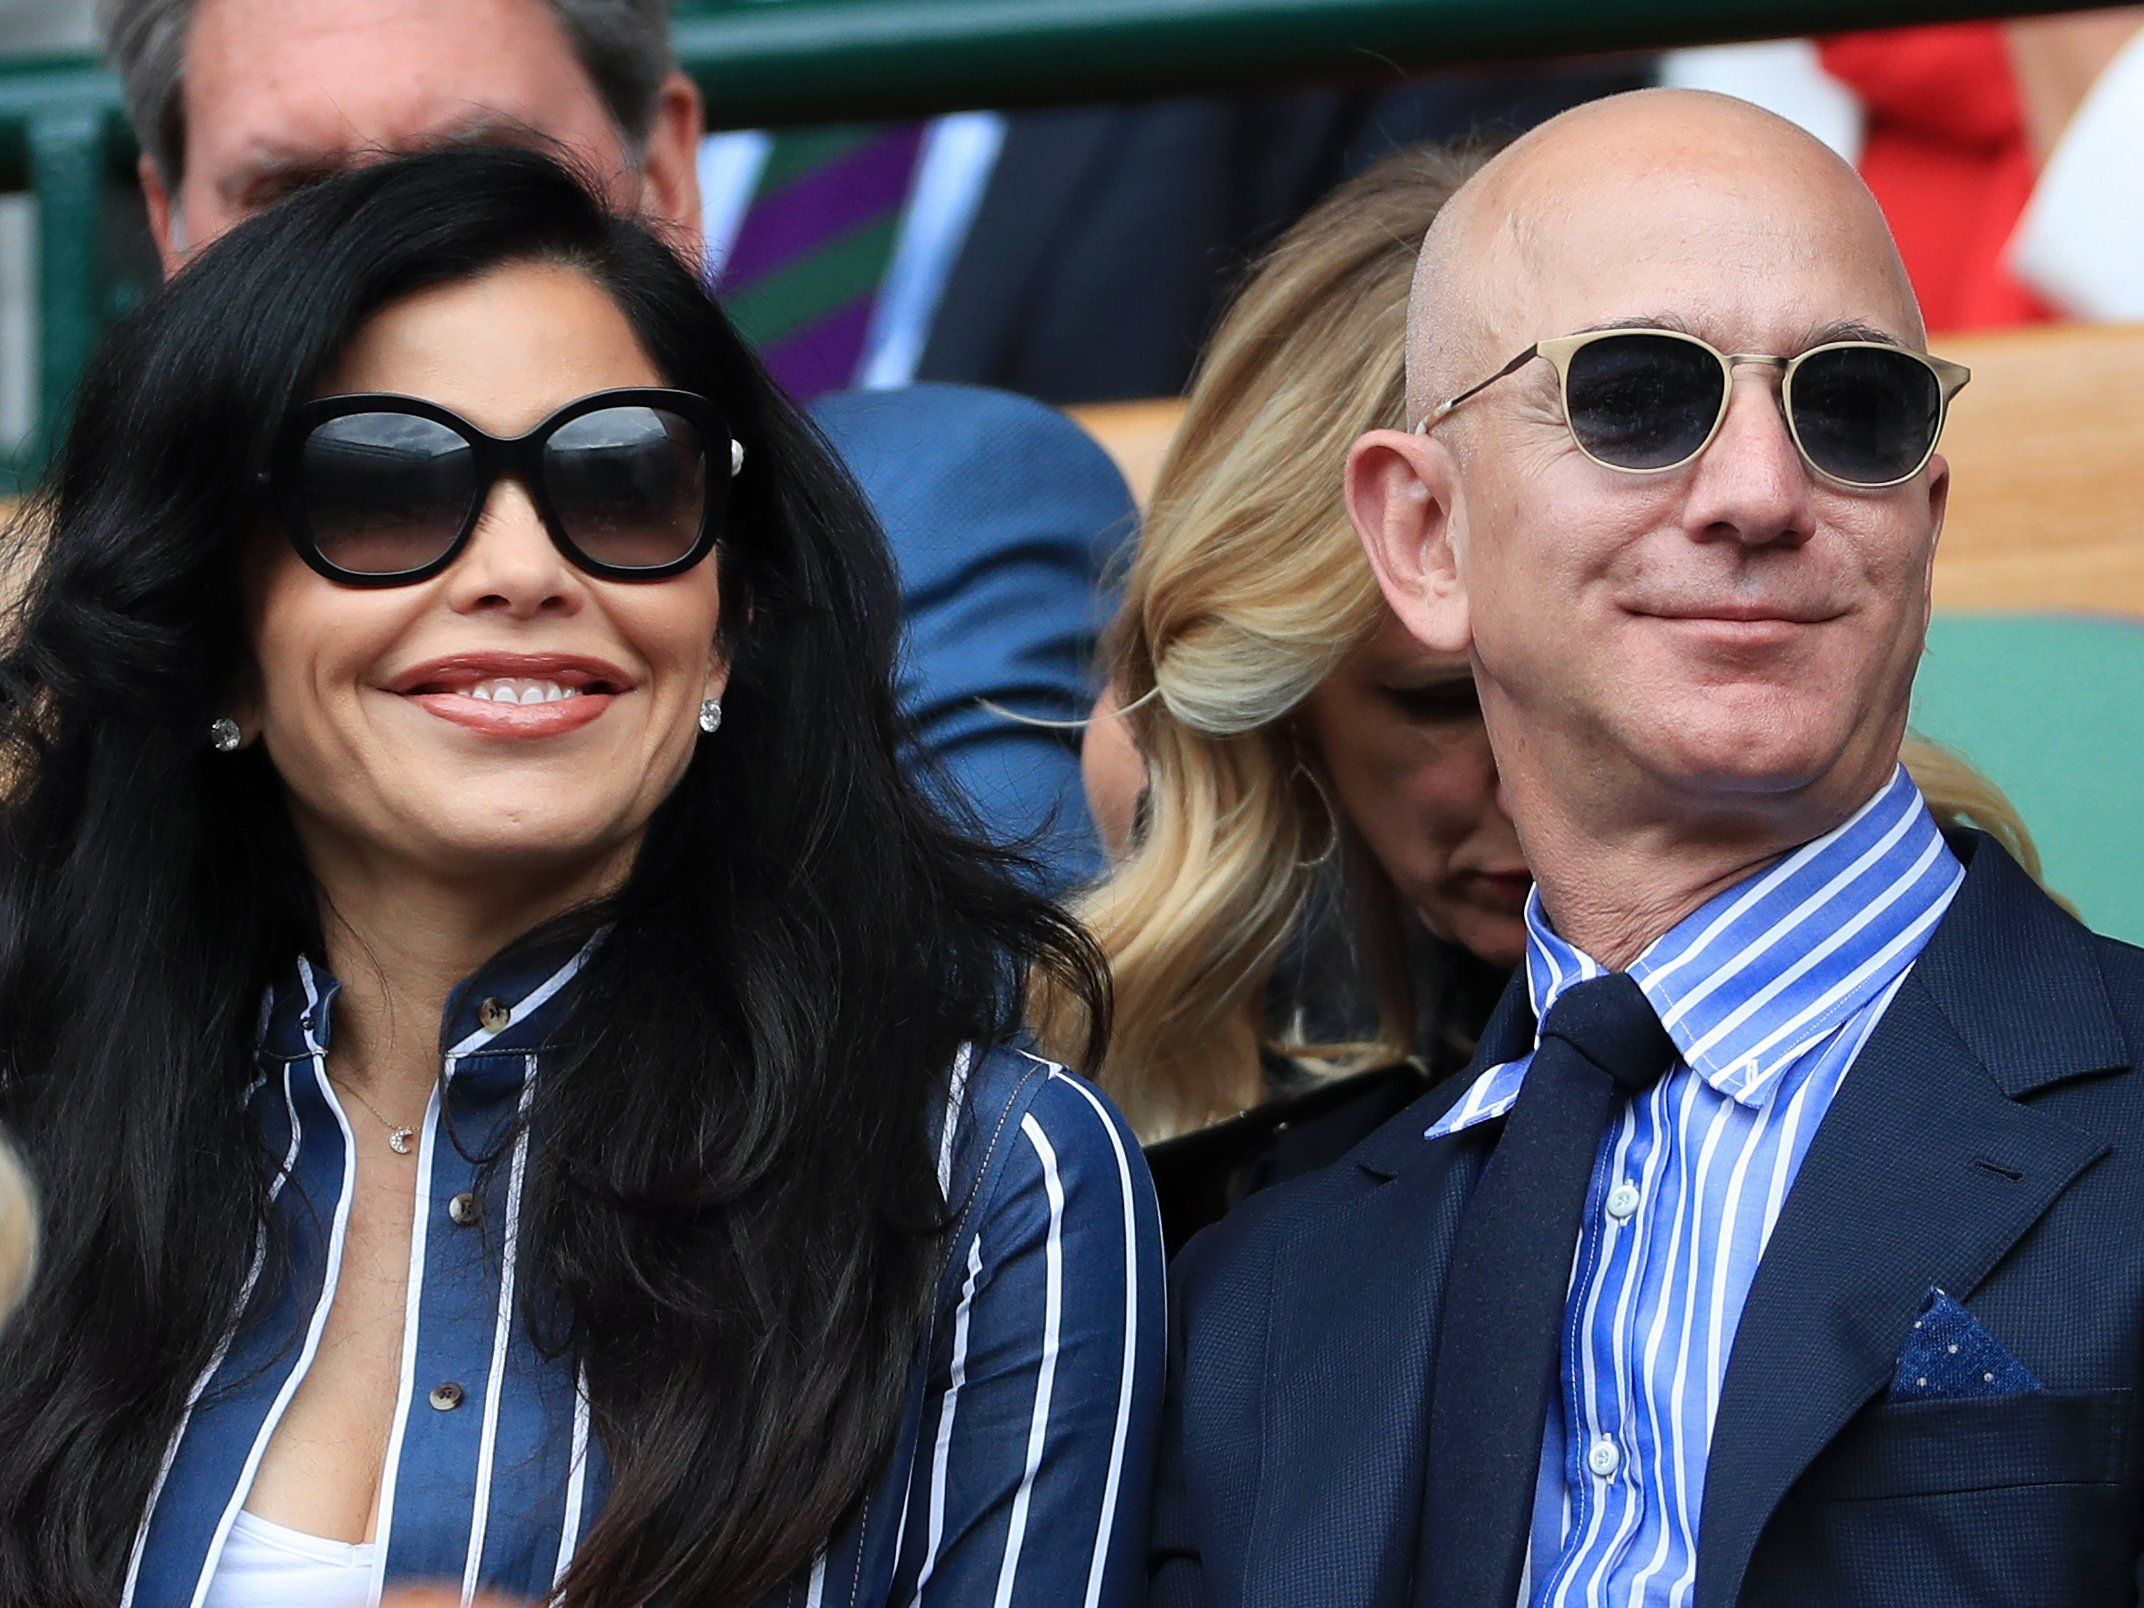 Jeff Bezos Has Reportedly Broken California S Record For The Most Expensive Home Sale Of All Time With His Purchase In 2020 Lauren Sanchez Amazon Jeff Bezos Jeff Bezos